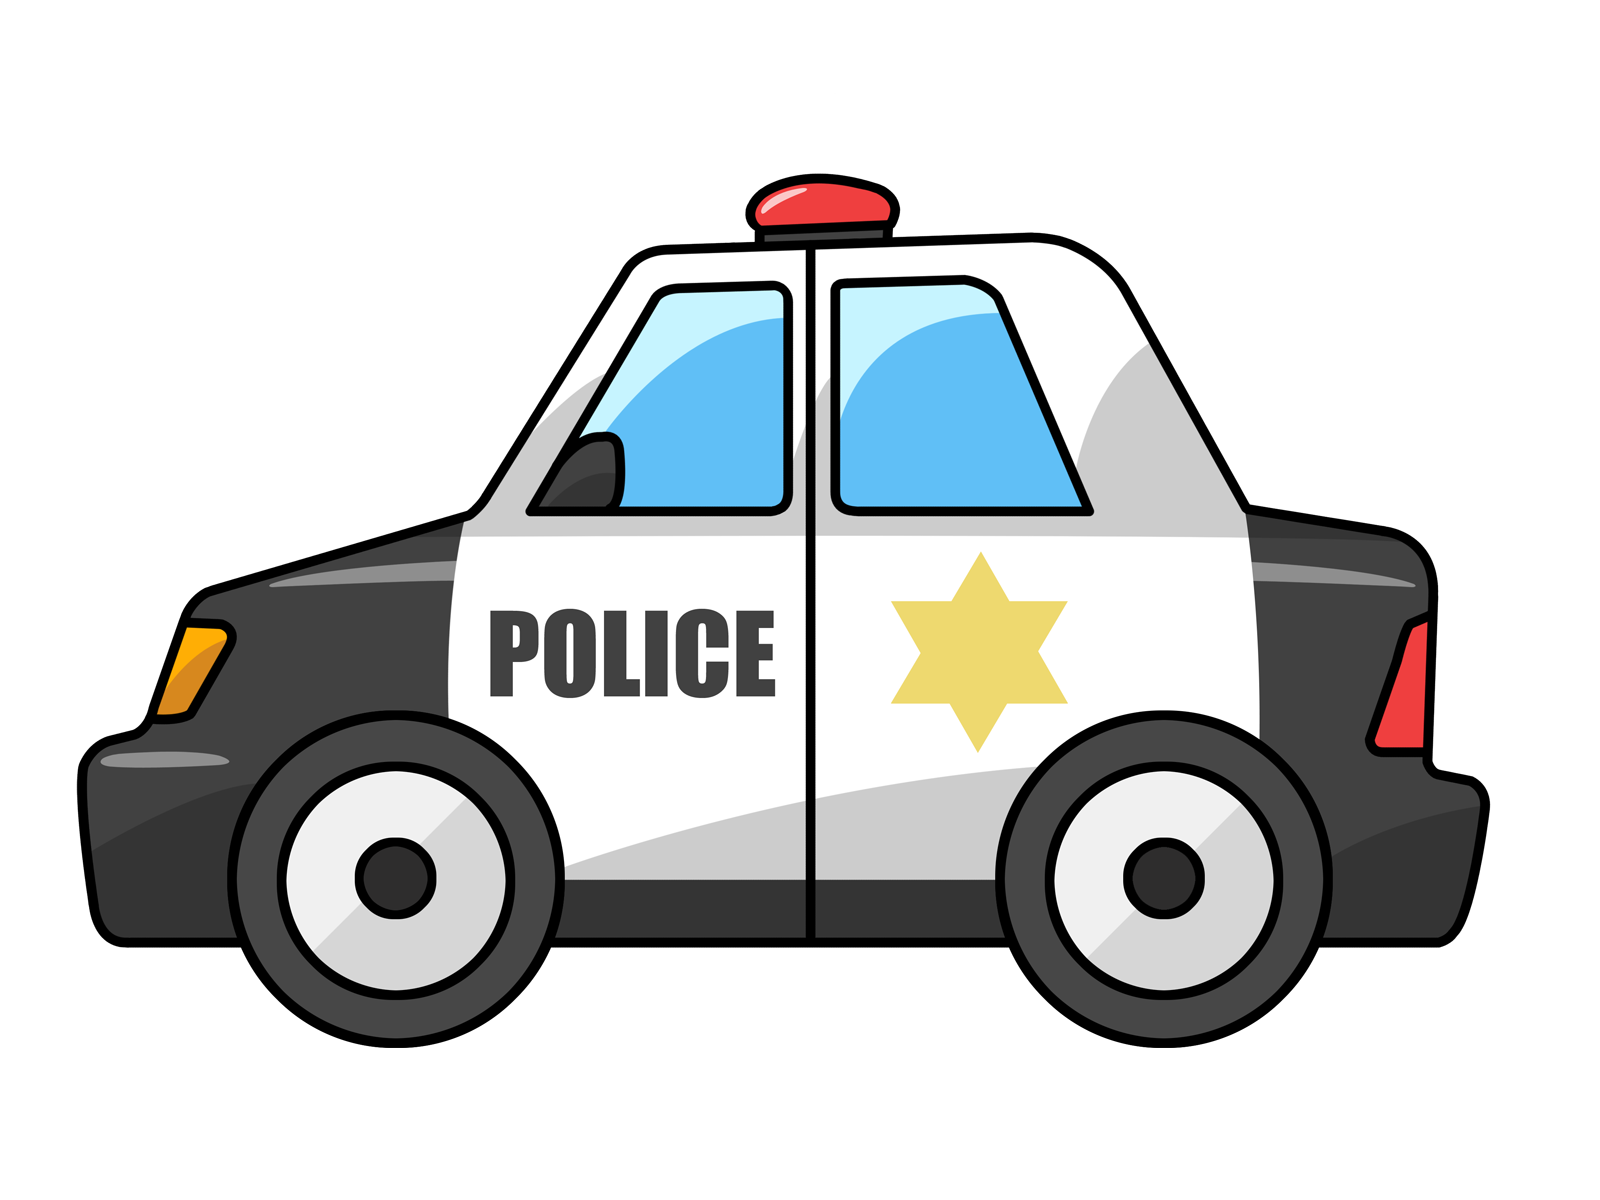 Free To Use Public Domain Police Car Clip Art Clipart Best Clipart Best Color Black Silver Blue